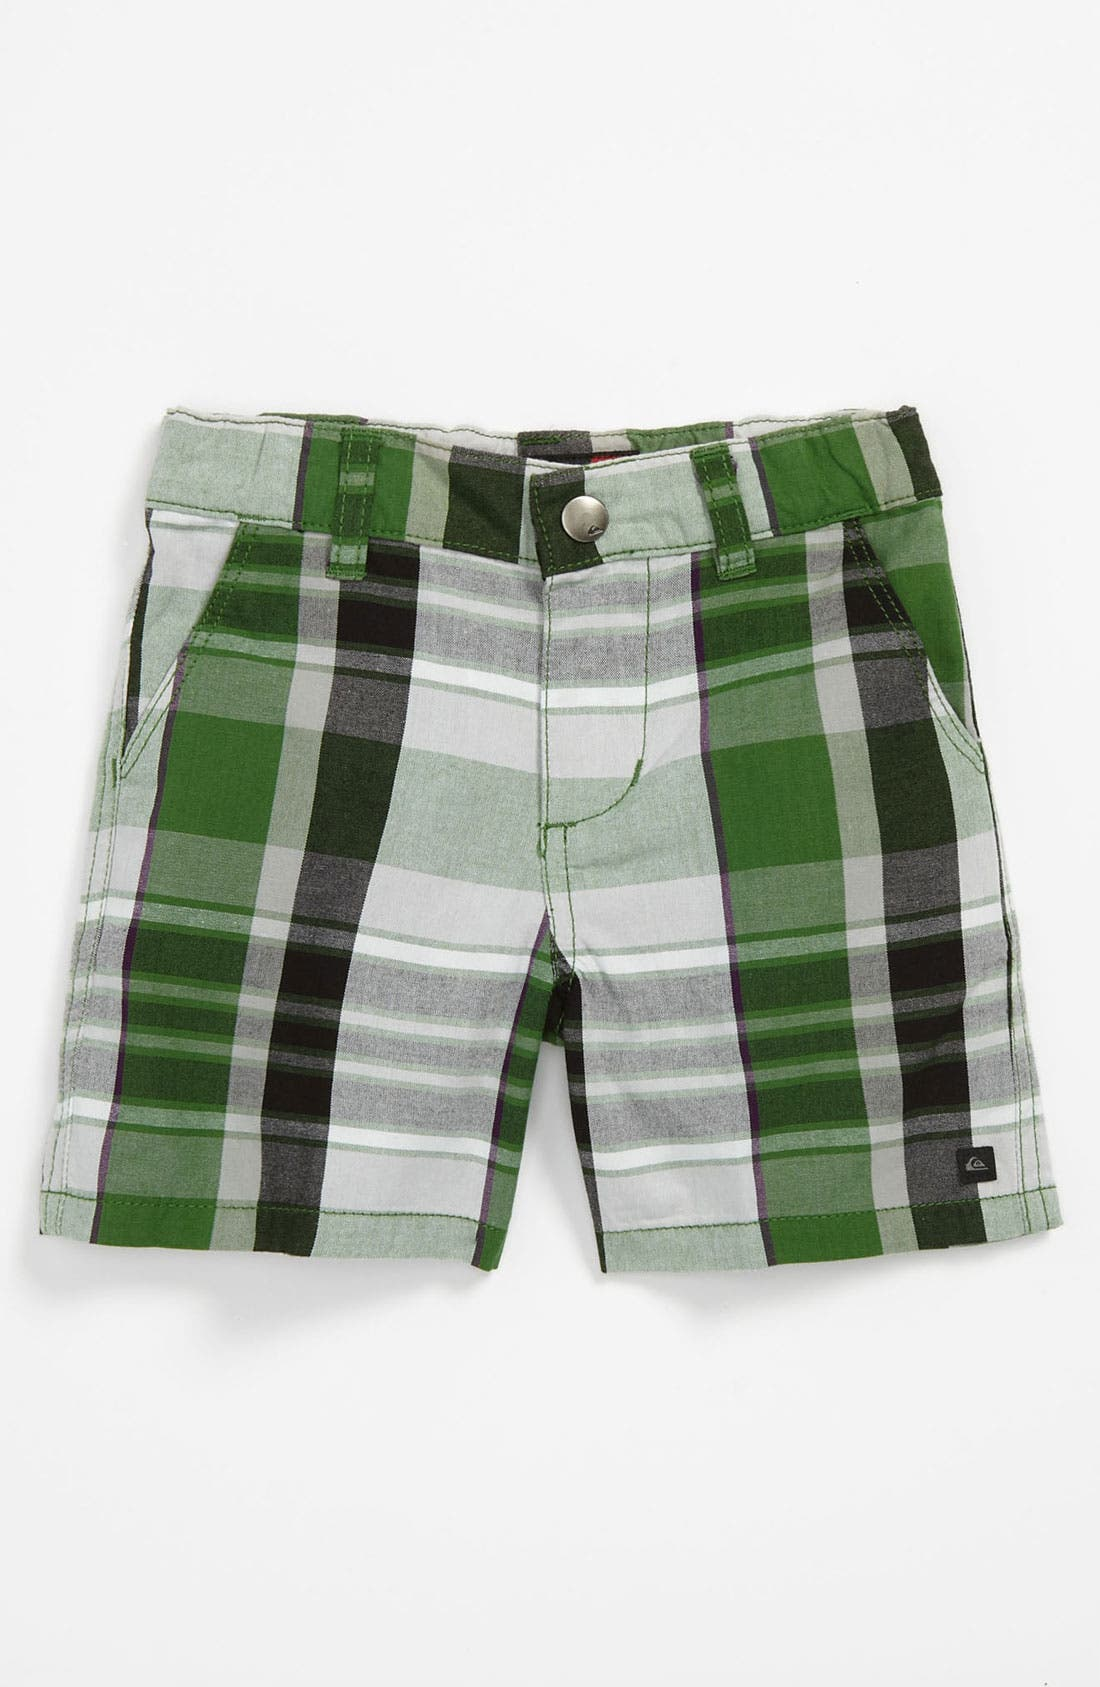 Alternate Image 1 Selected - Quiksilver 'Nectar' Plaid Shorts (Baby)